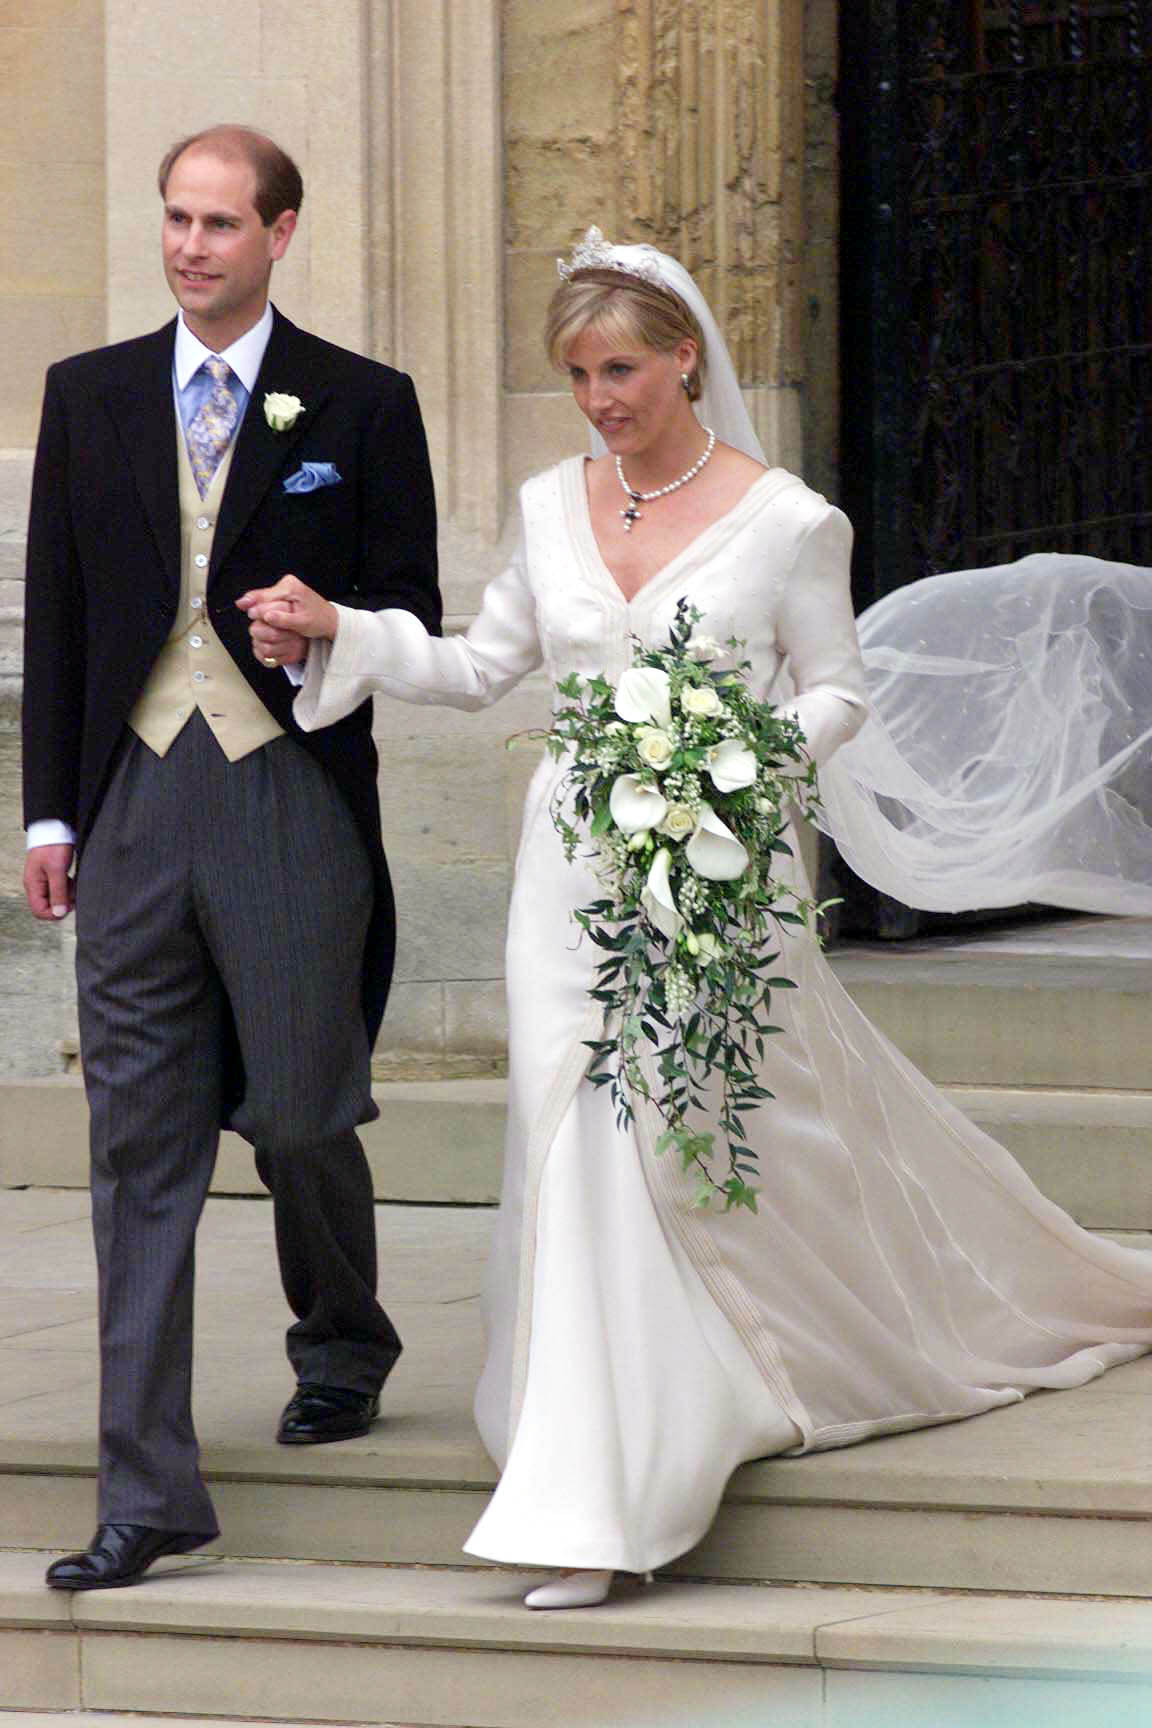 The Countess of Wessex's Wedding Dress